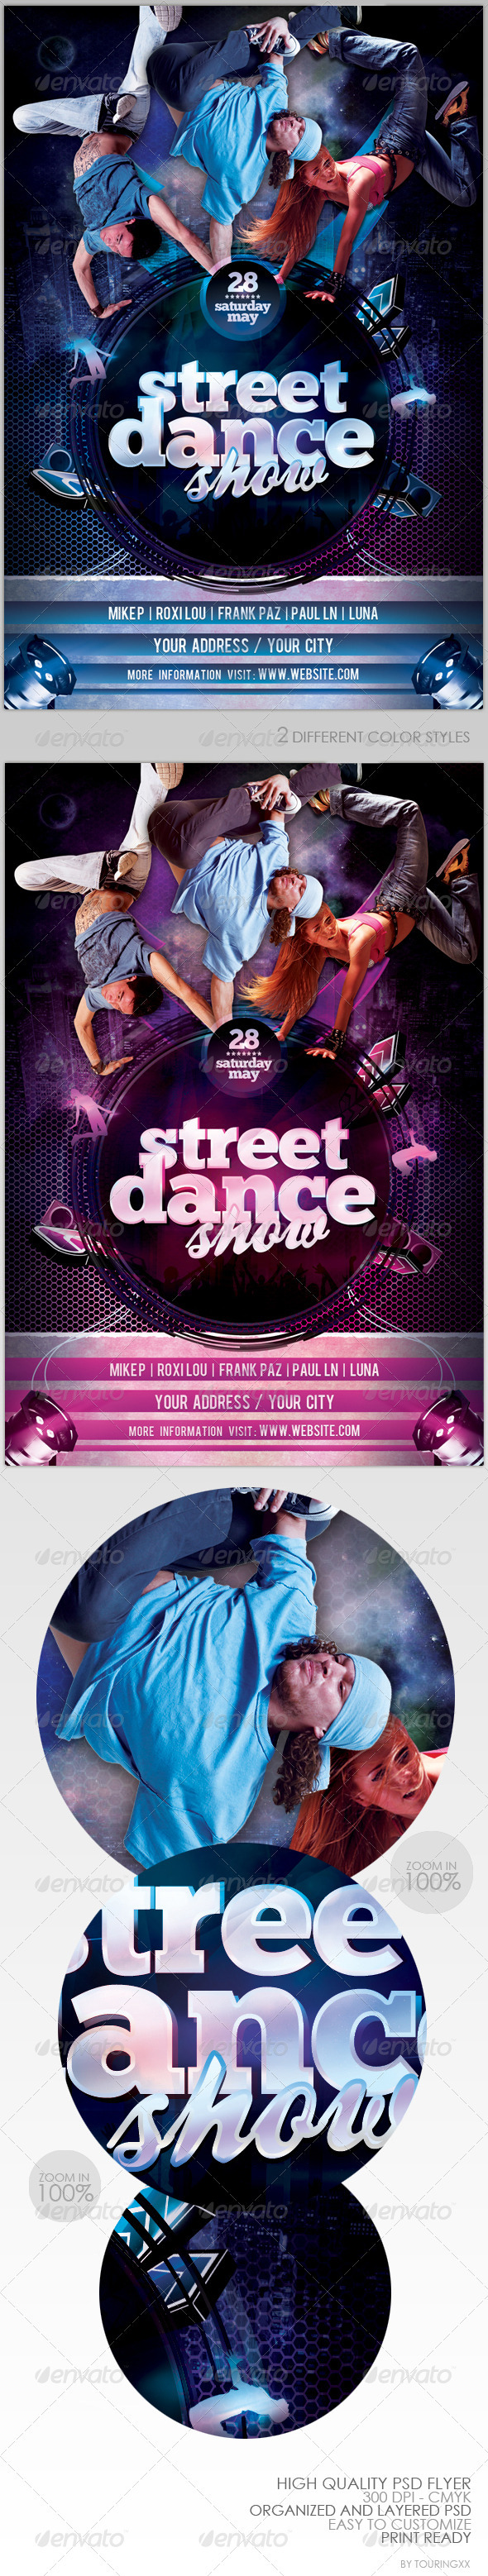 Street Dance Show Flyer Template - Flyers Print Templates